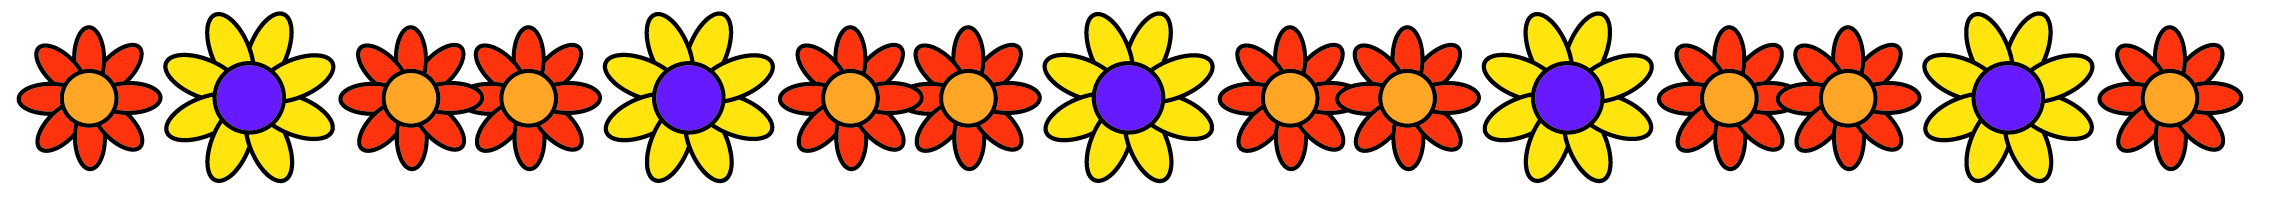 summer clipart lines - photo #29